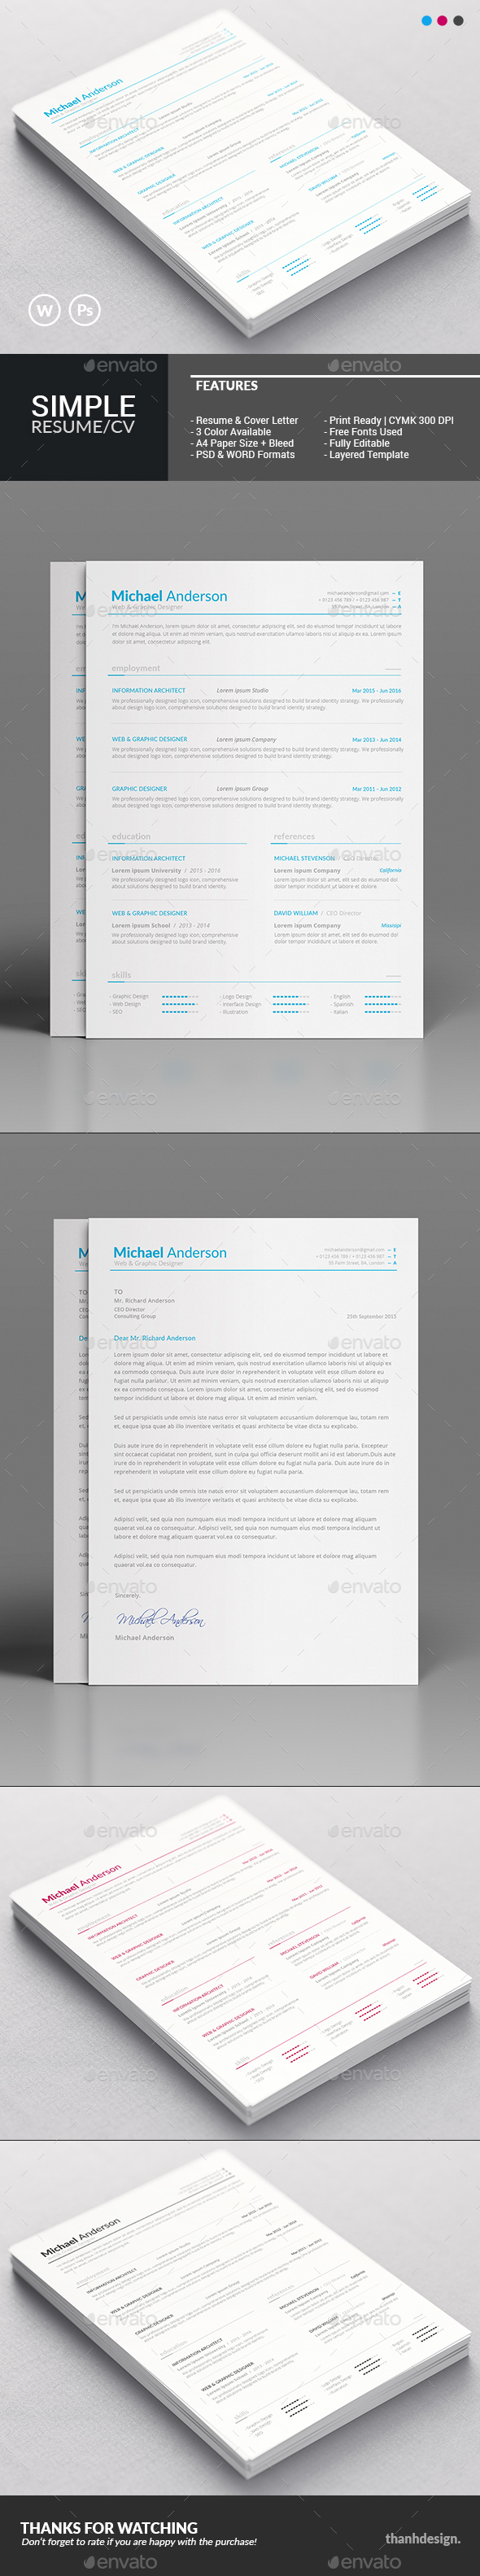 Resume CV & Cover Letter - Resumes Stationery